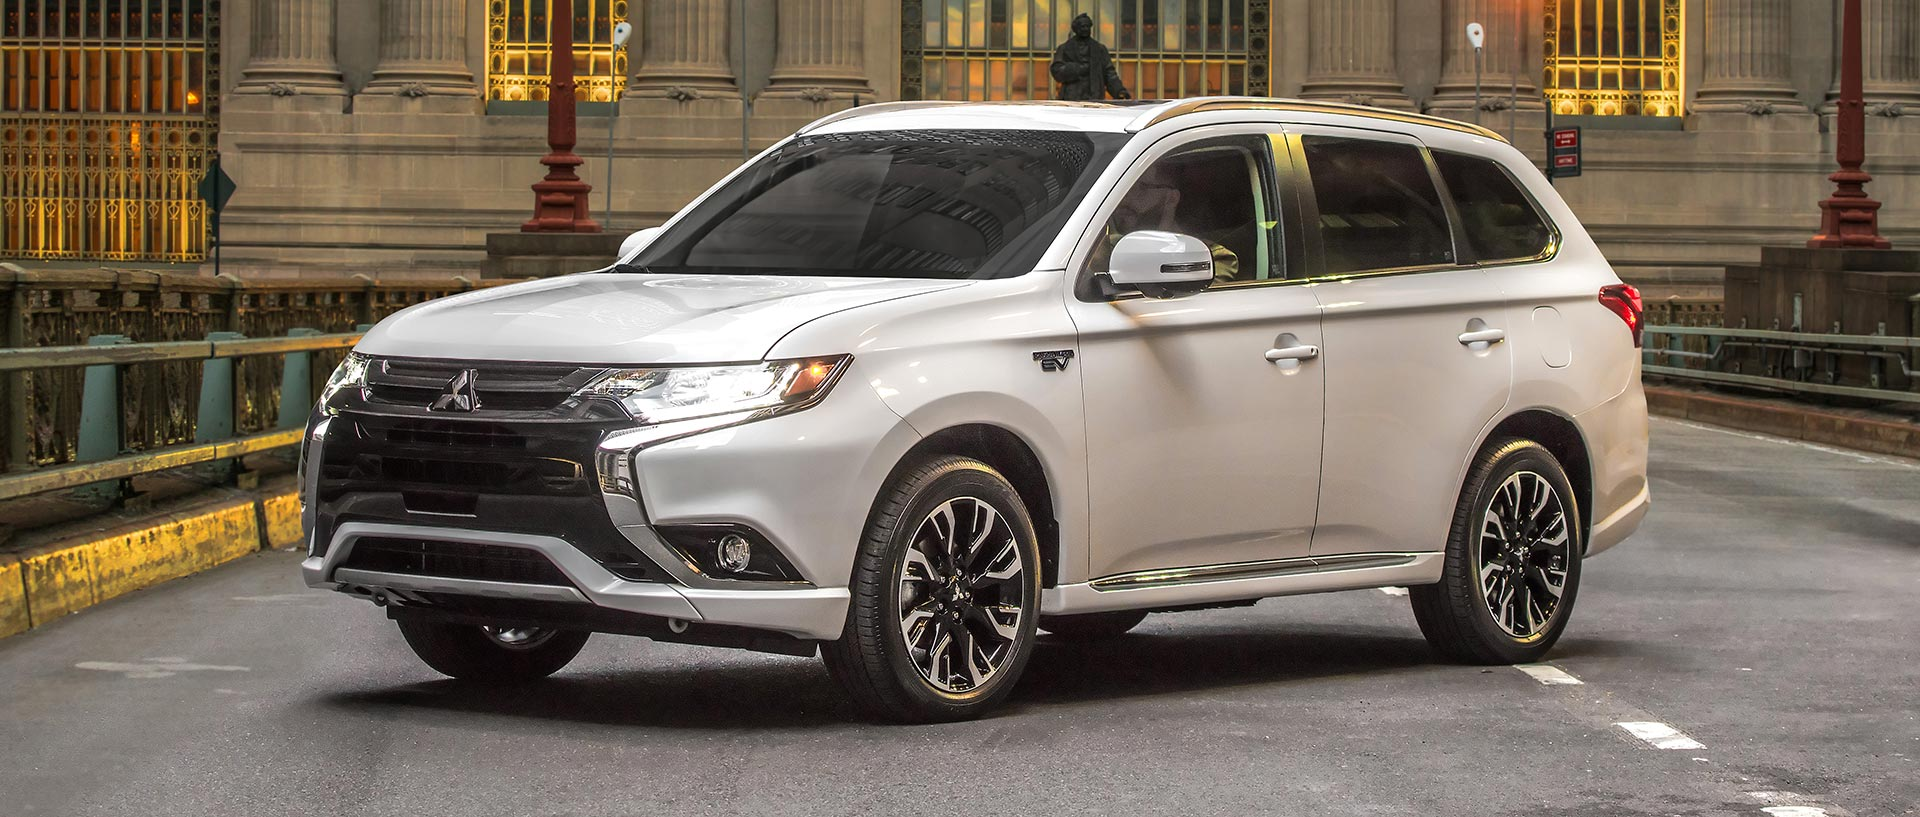 2017 mitsubishi outlander phev consumer reports. Black Bedroom Furniture Sets. Home Design Ideas